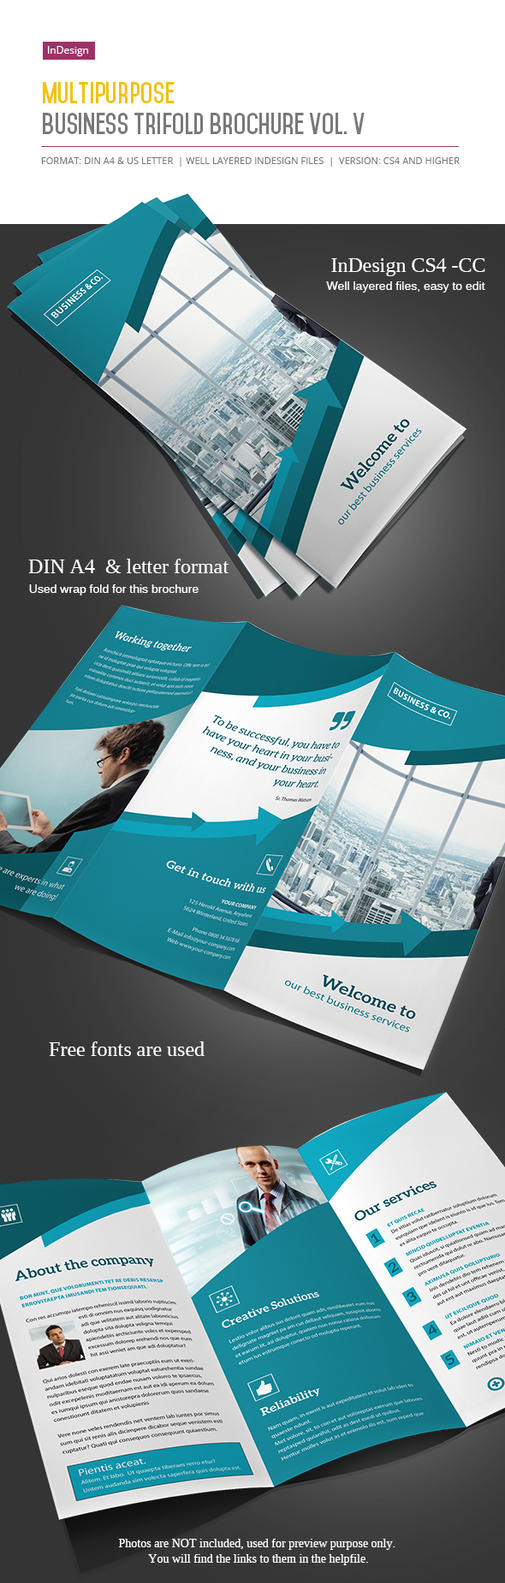 Business Trifold Brochure Vol. V by imagearea